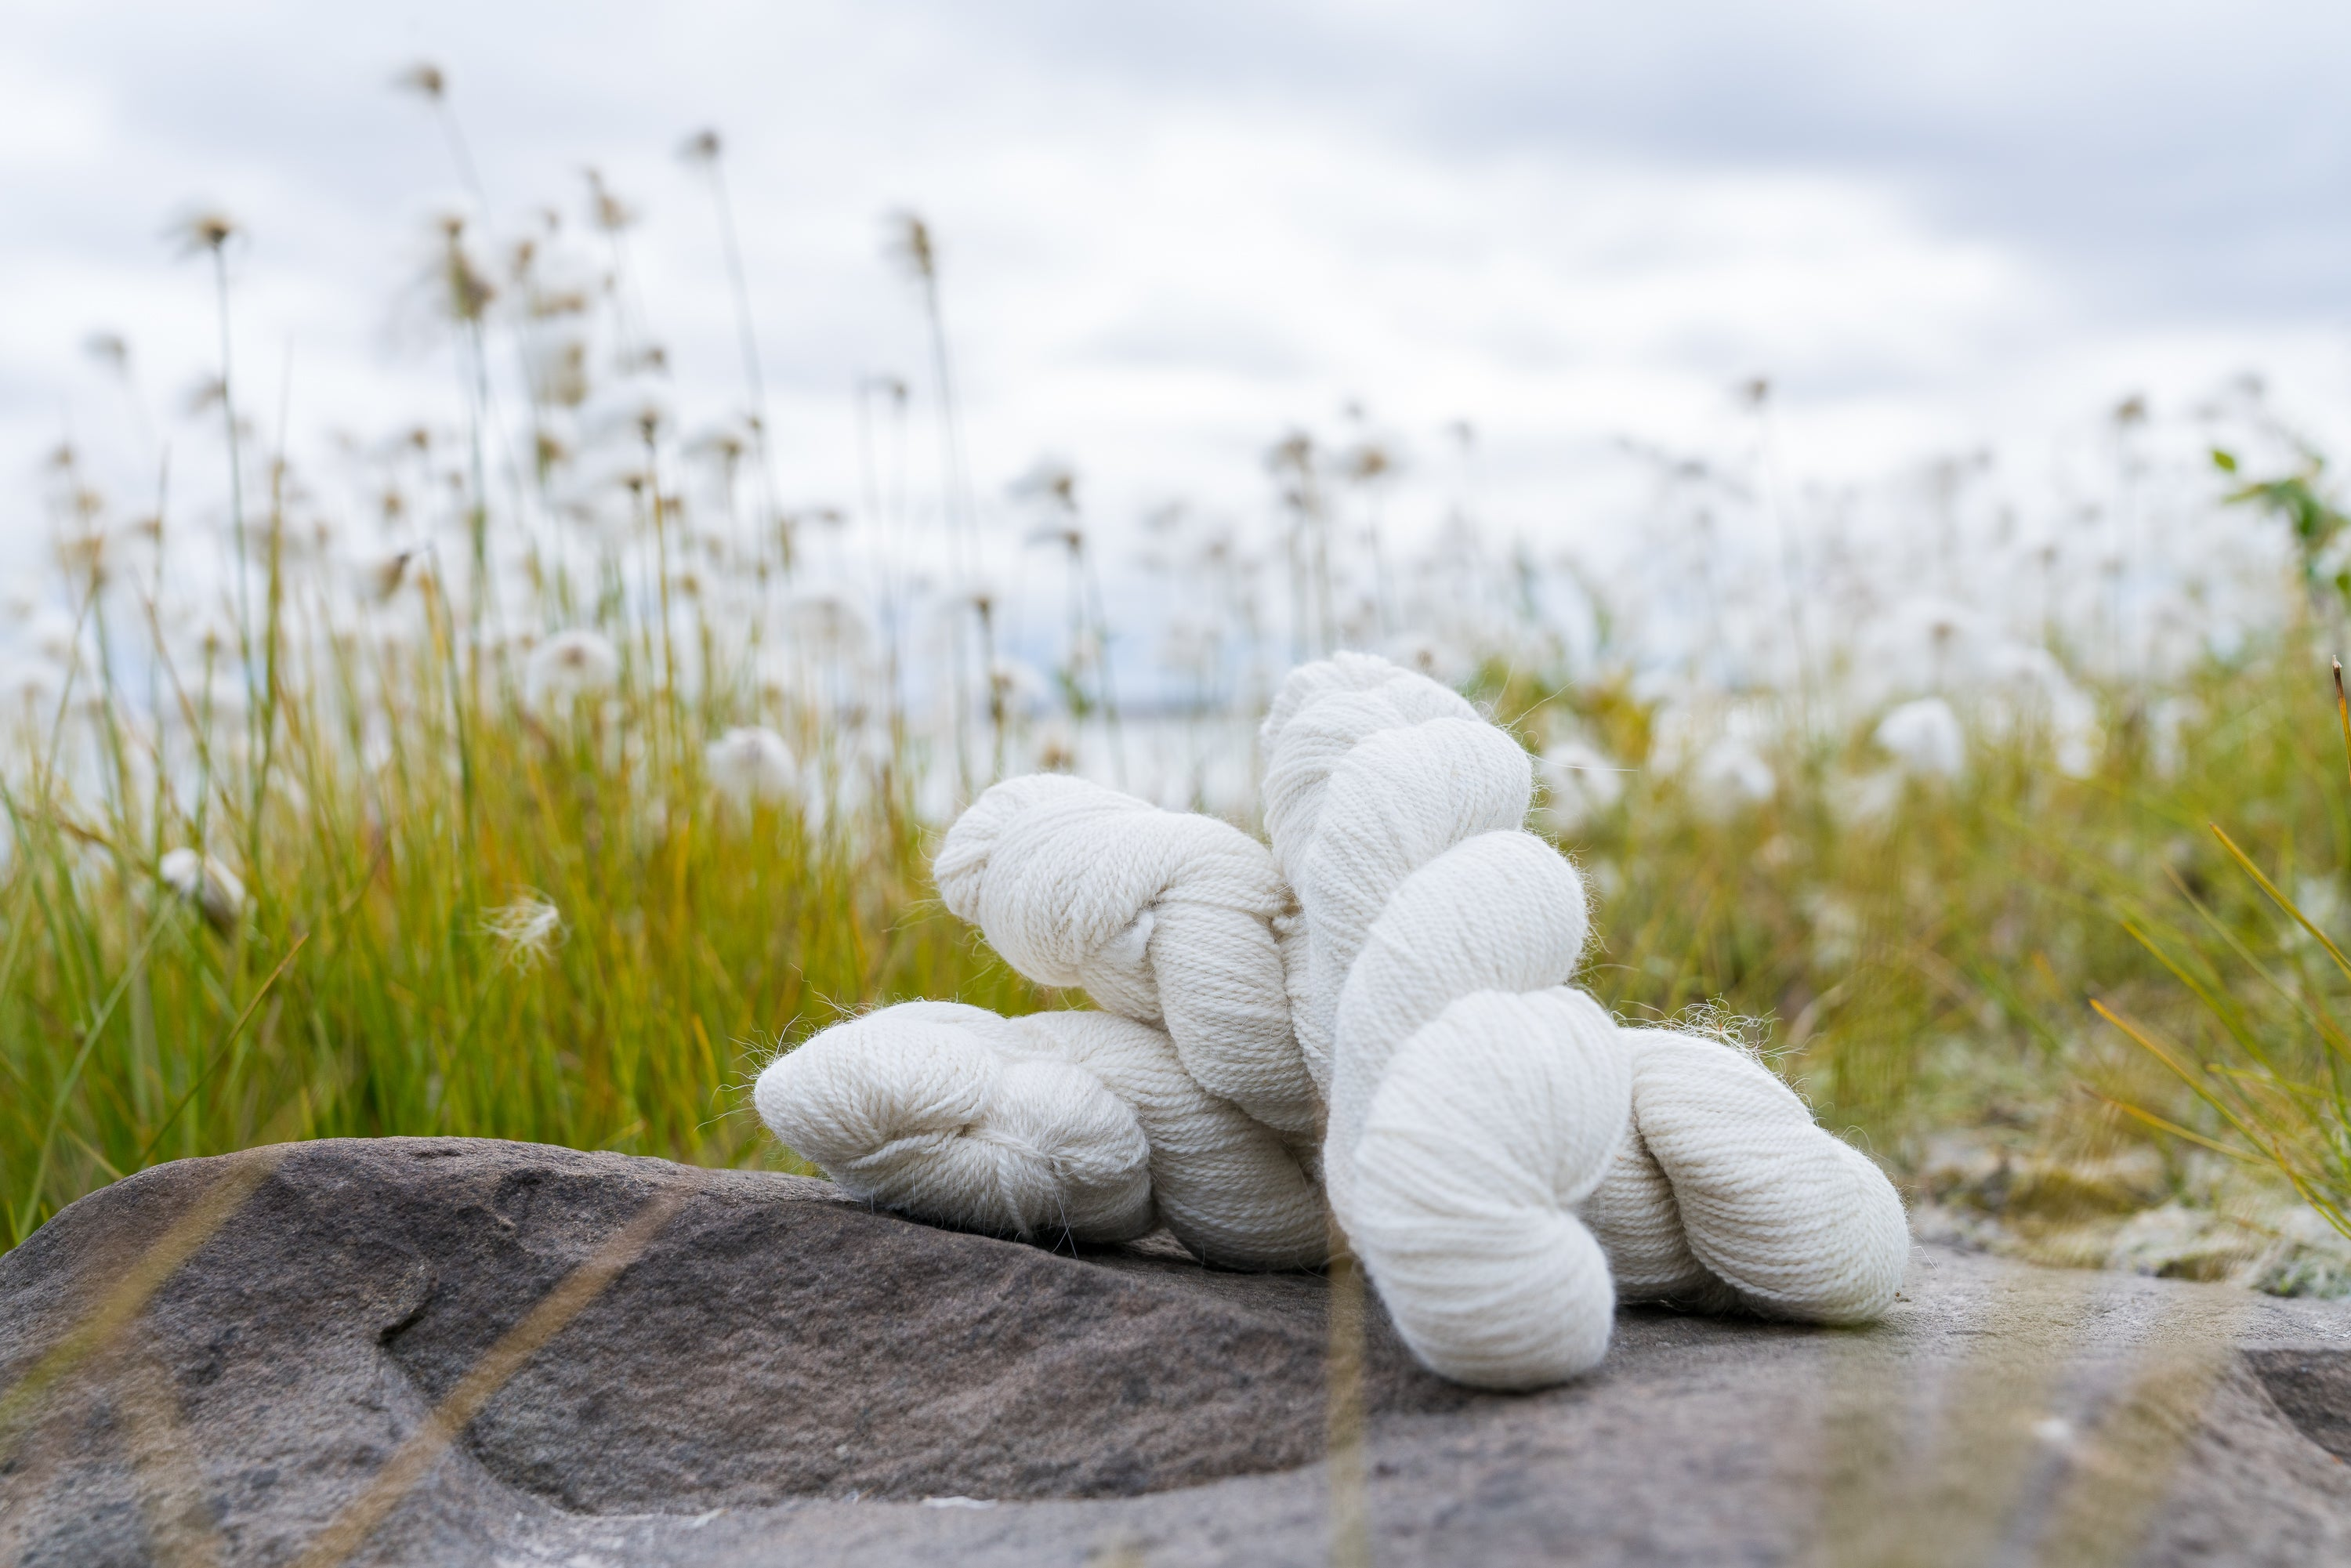 30% Arctic Fox: 60% Superfine Merino: 10% Silk Yarn among the Arctic Cotton grass